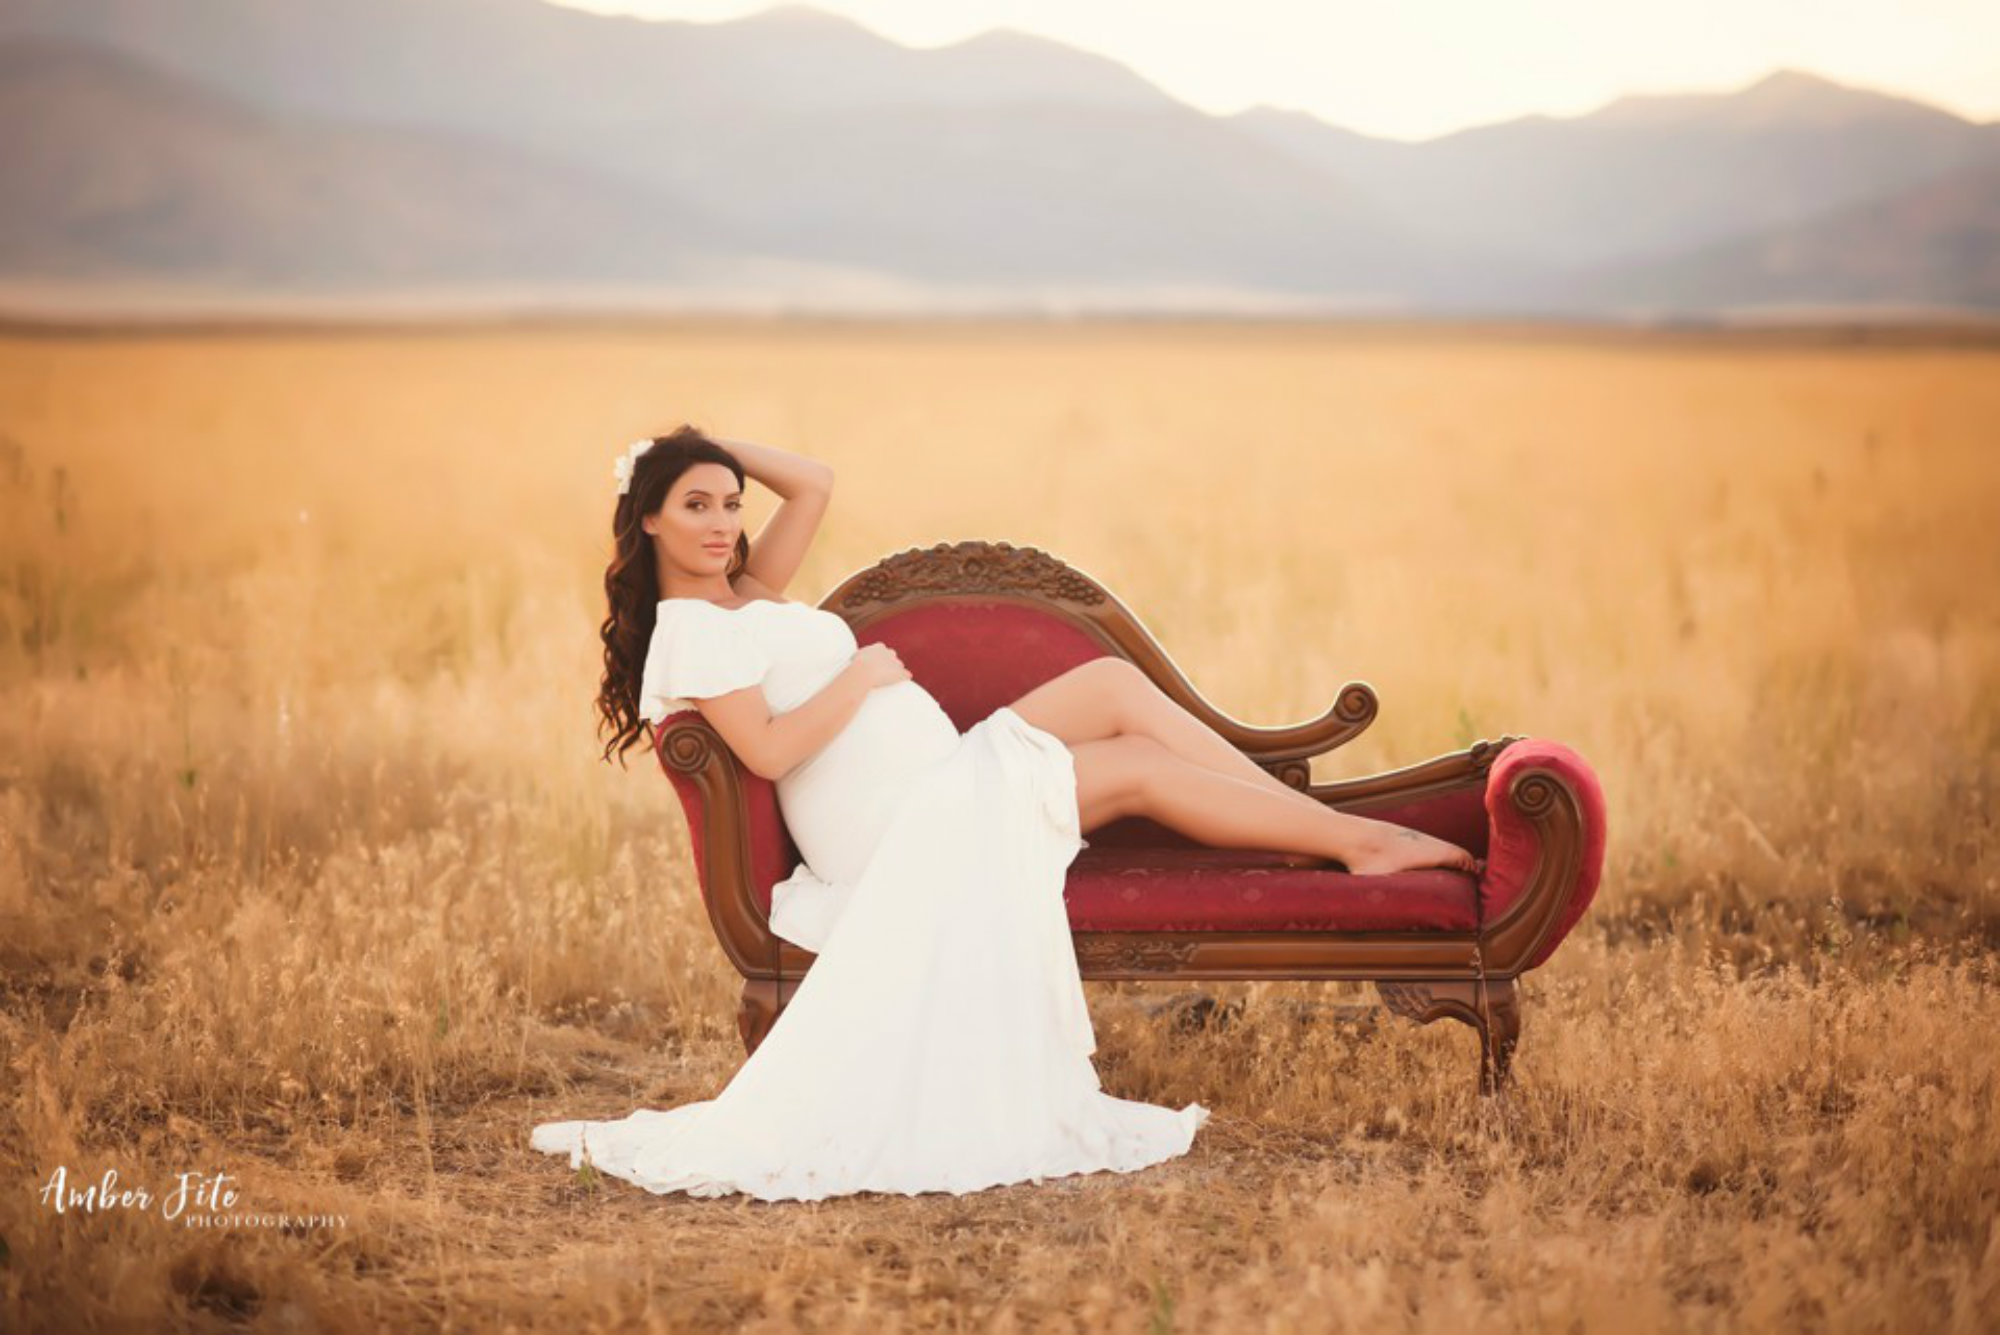 how to take maternity photos amber fite image